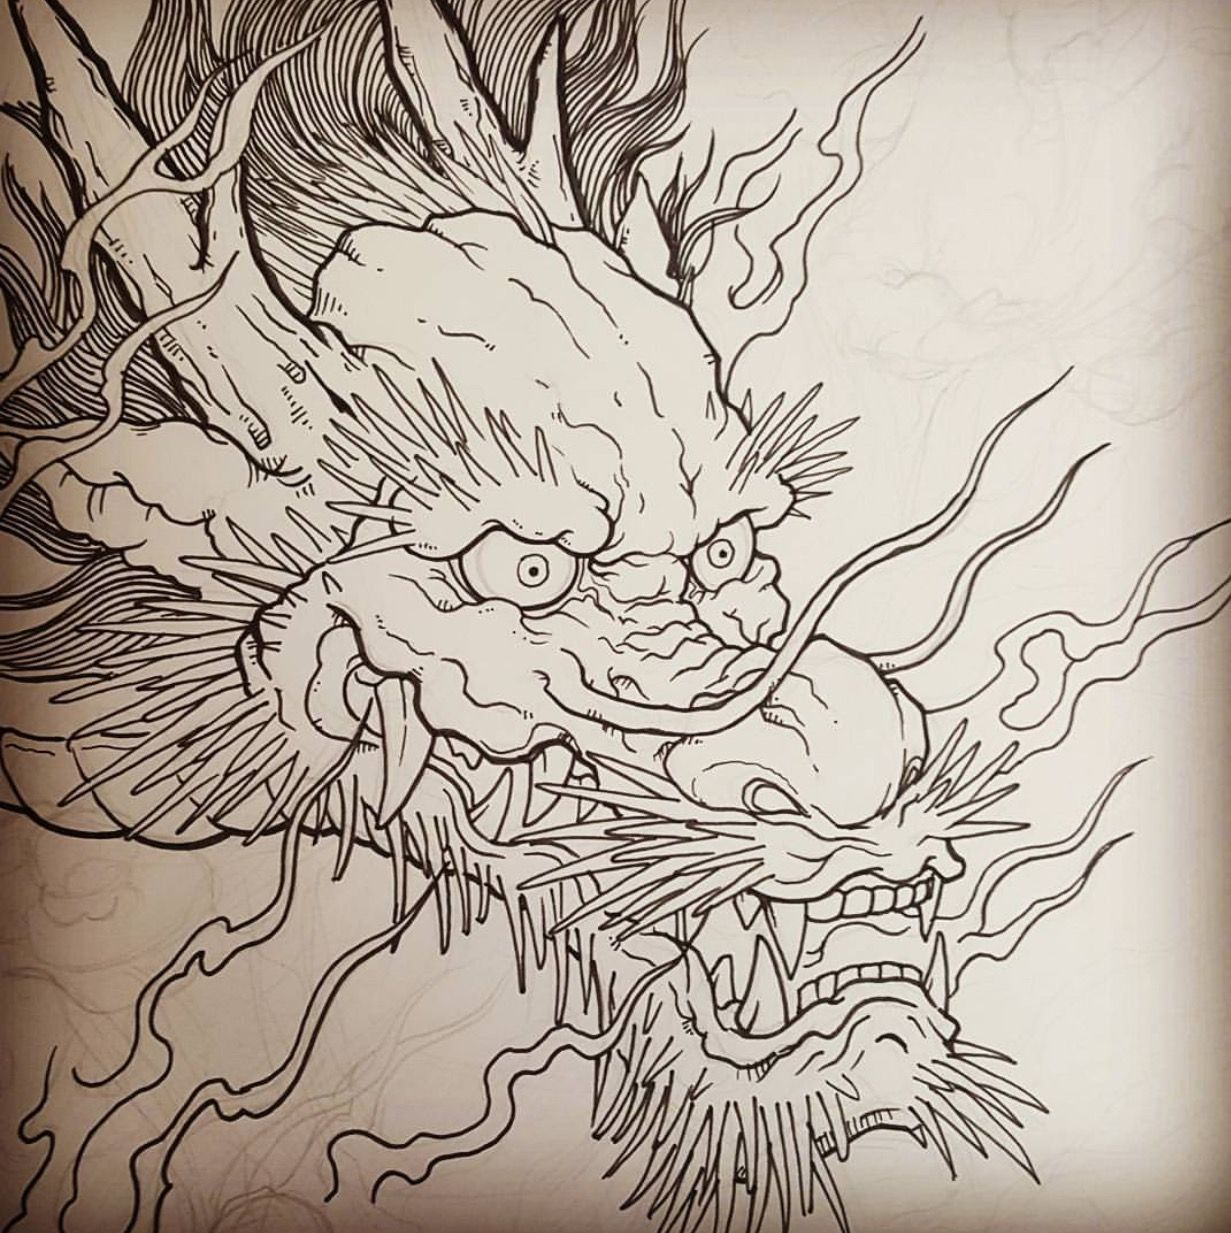 Asian dragon tatoos join in?